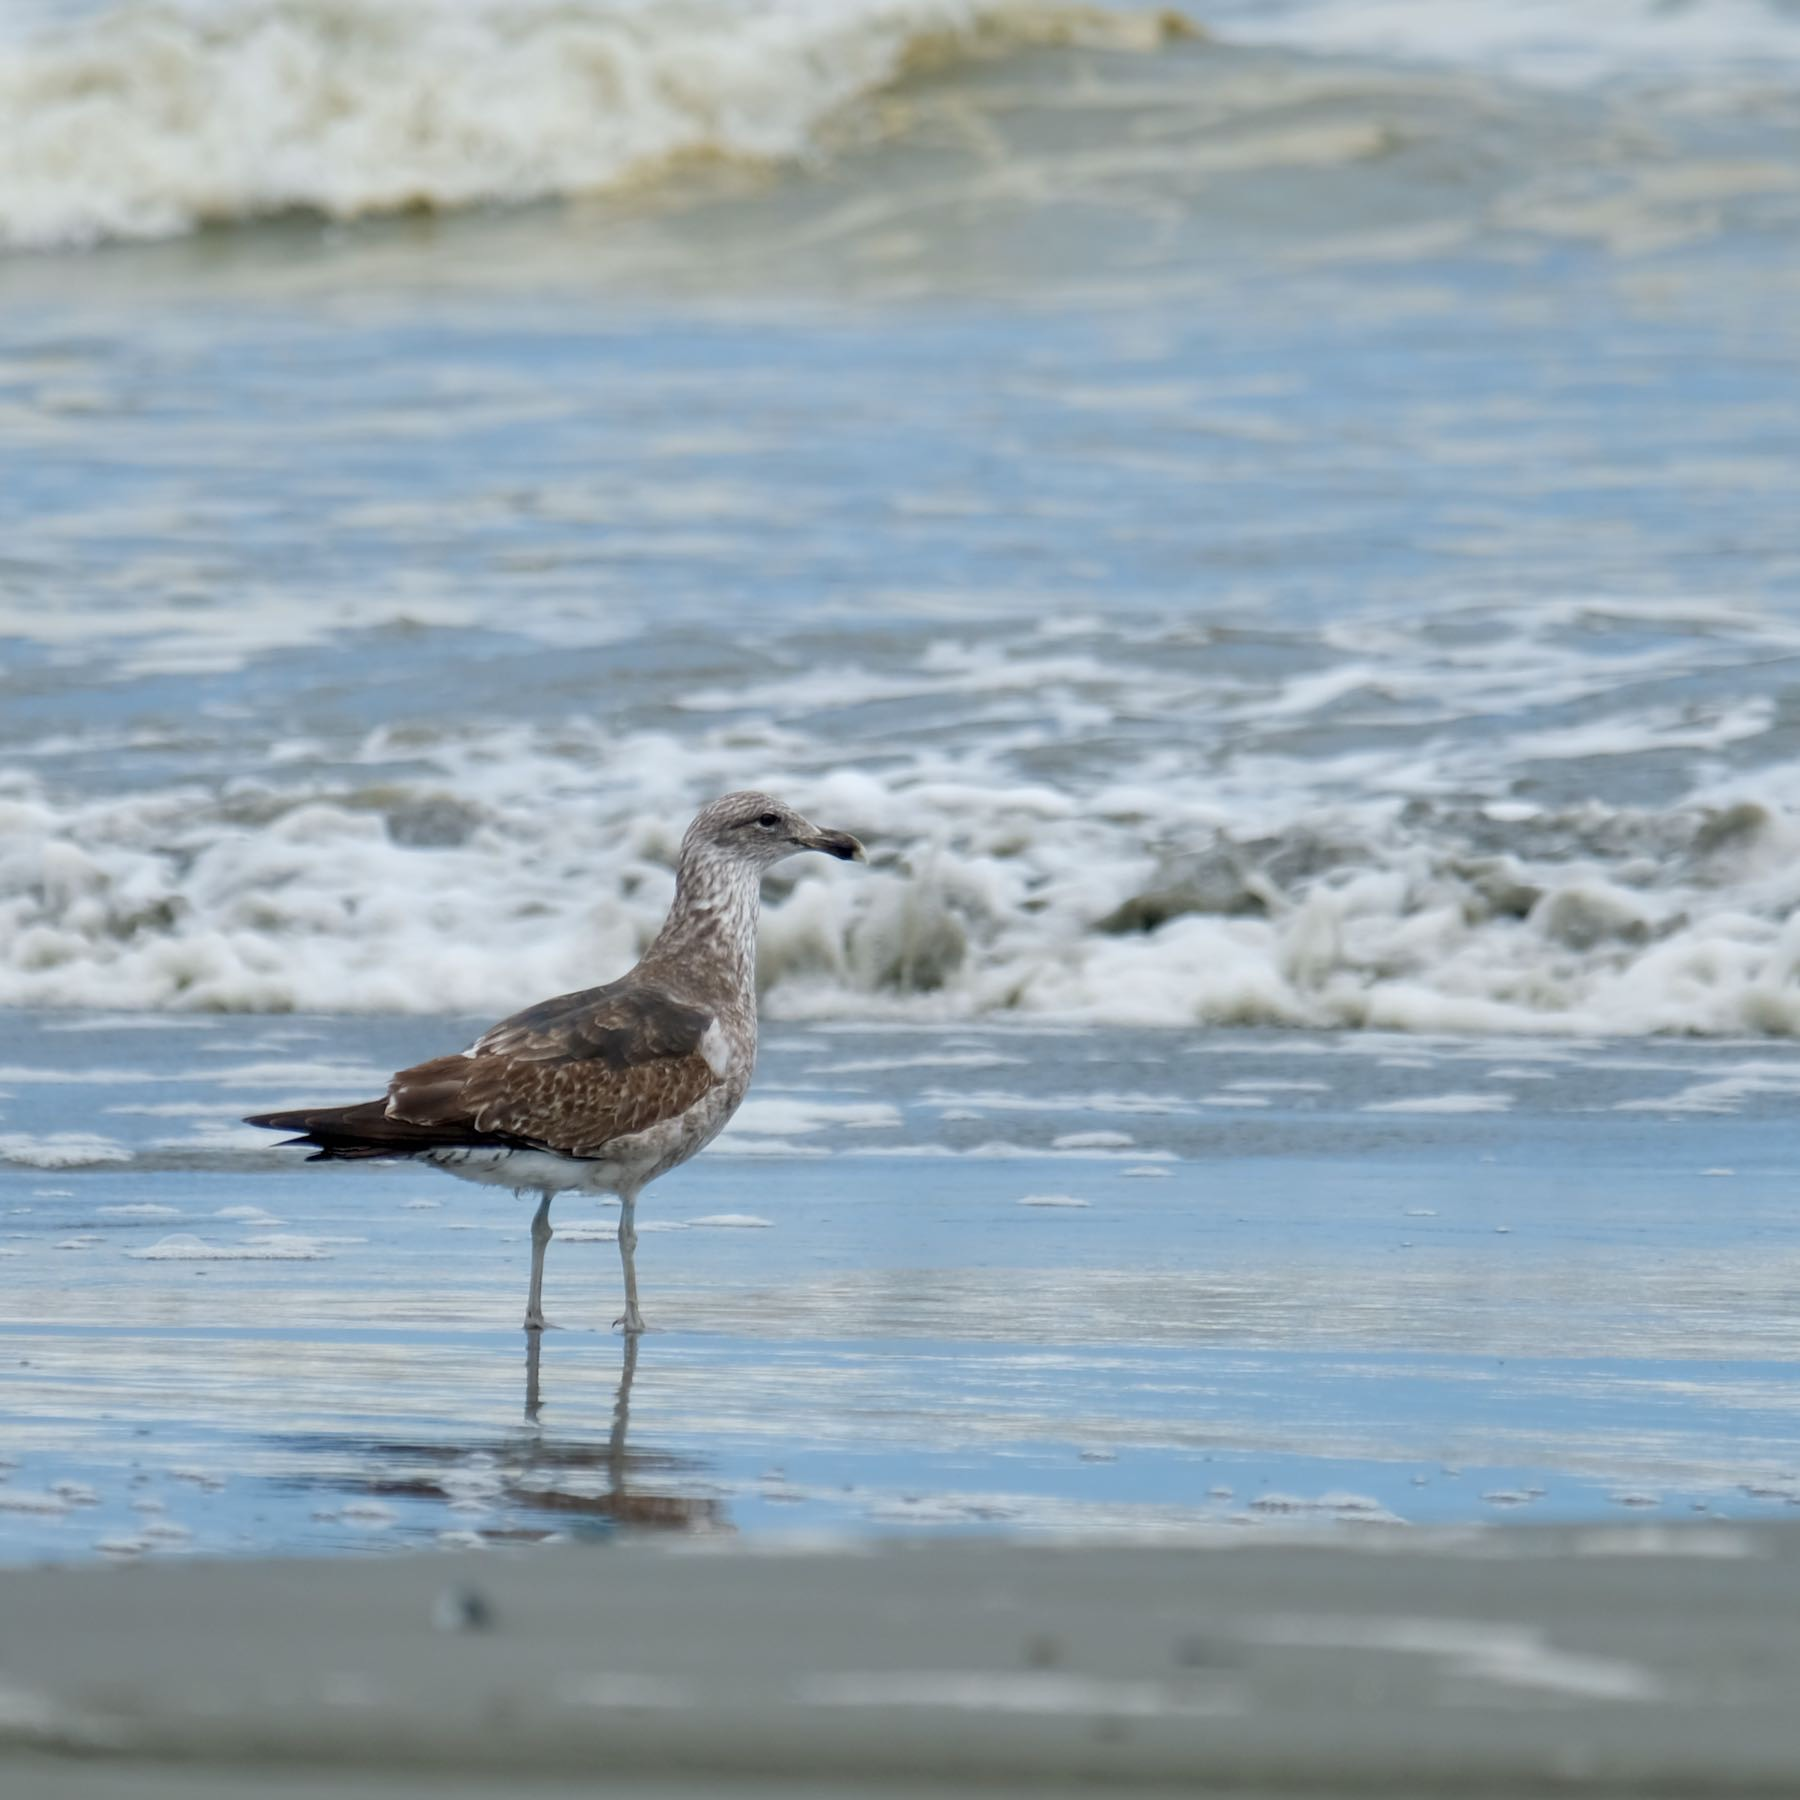 A single brown and spotted gull at the water's edge on the beach.